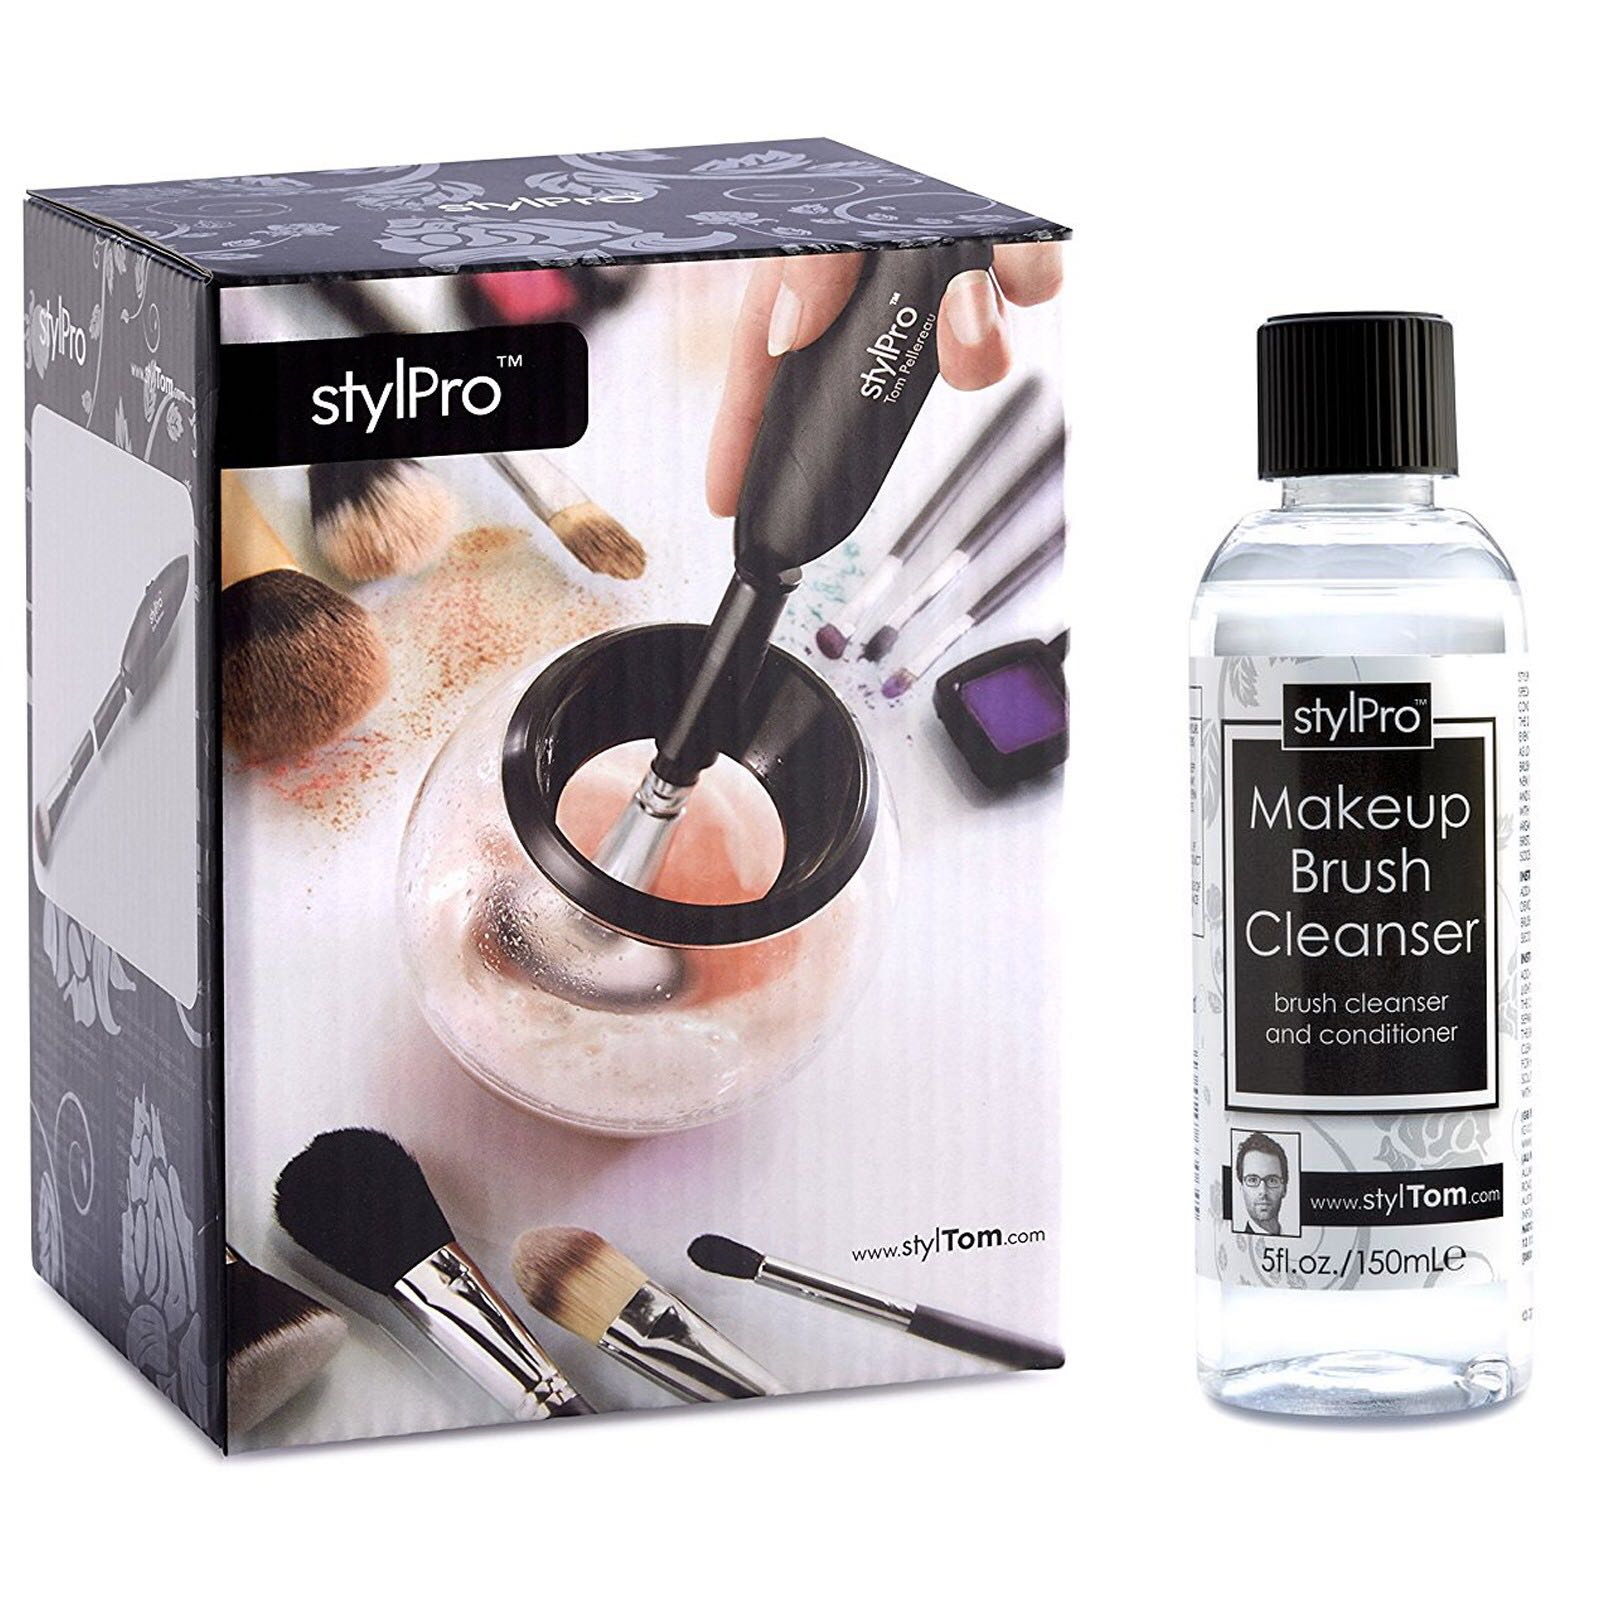 Stylpro Make Up Brush Cleanser